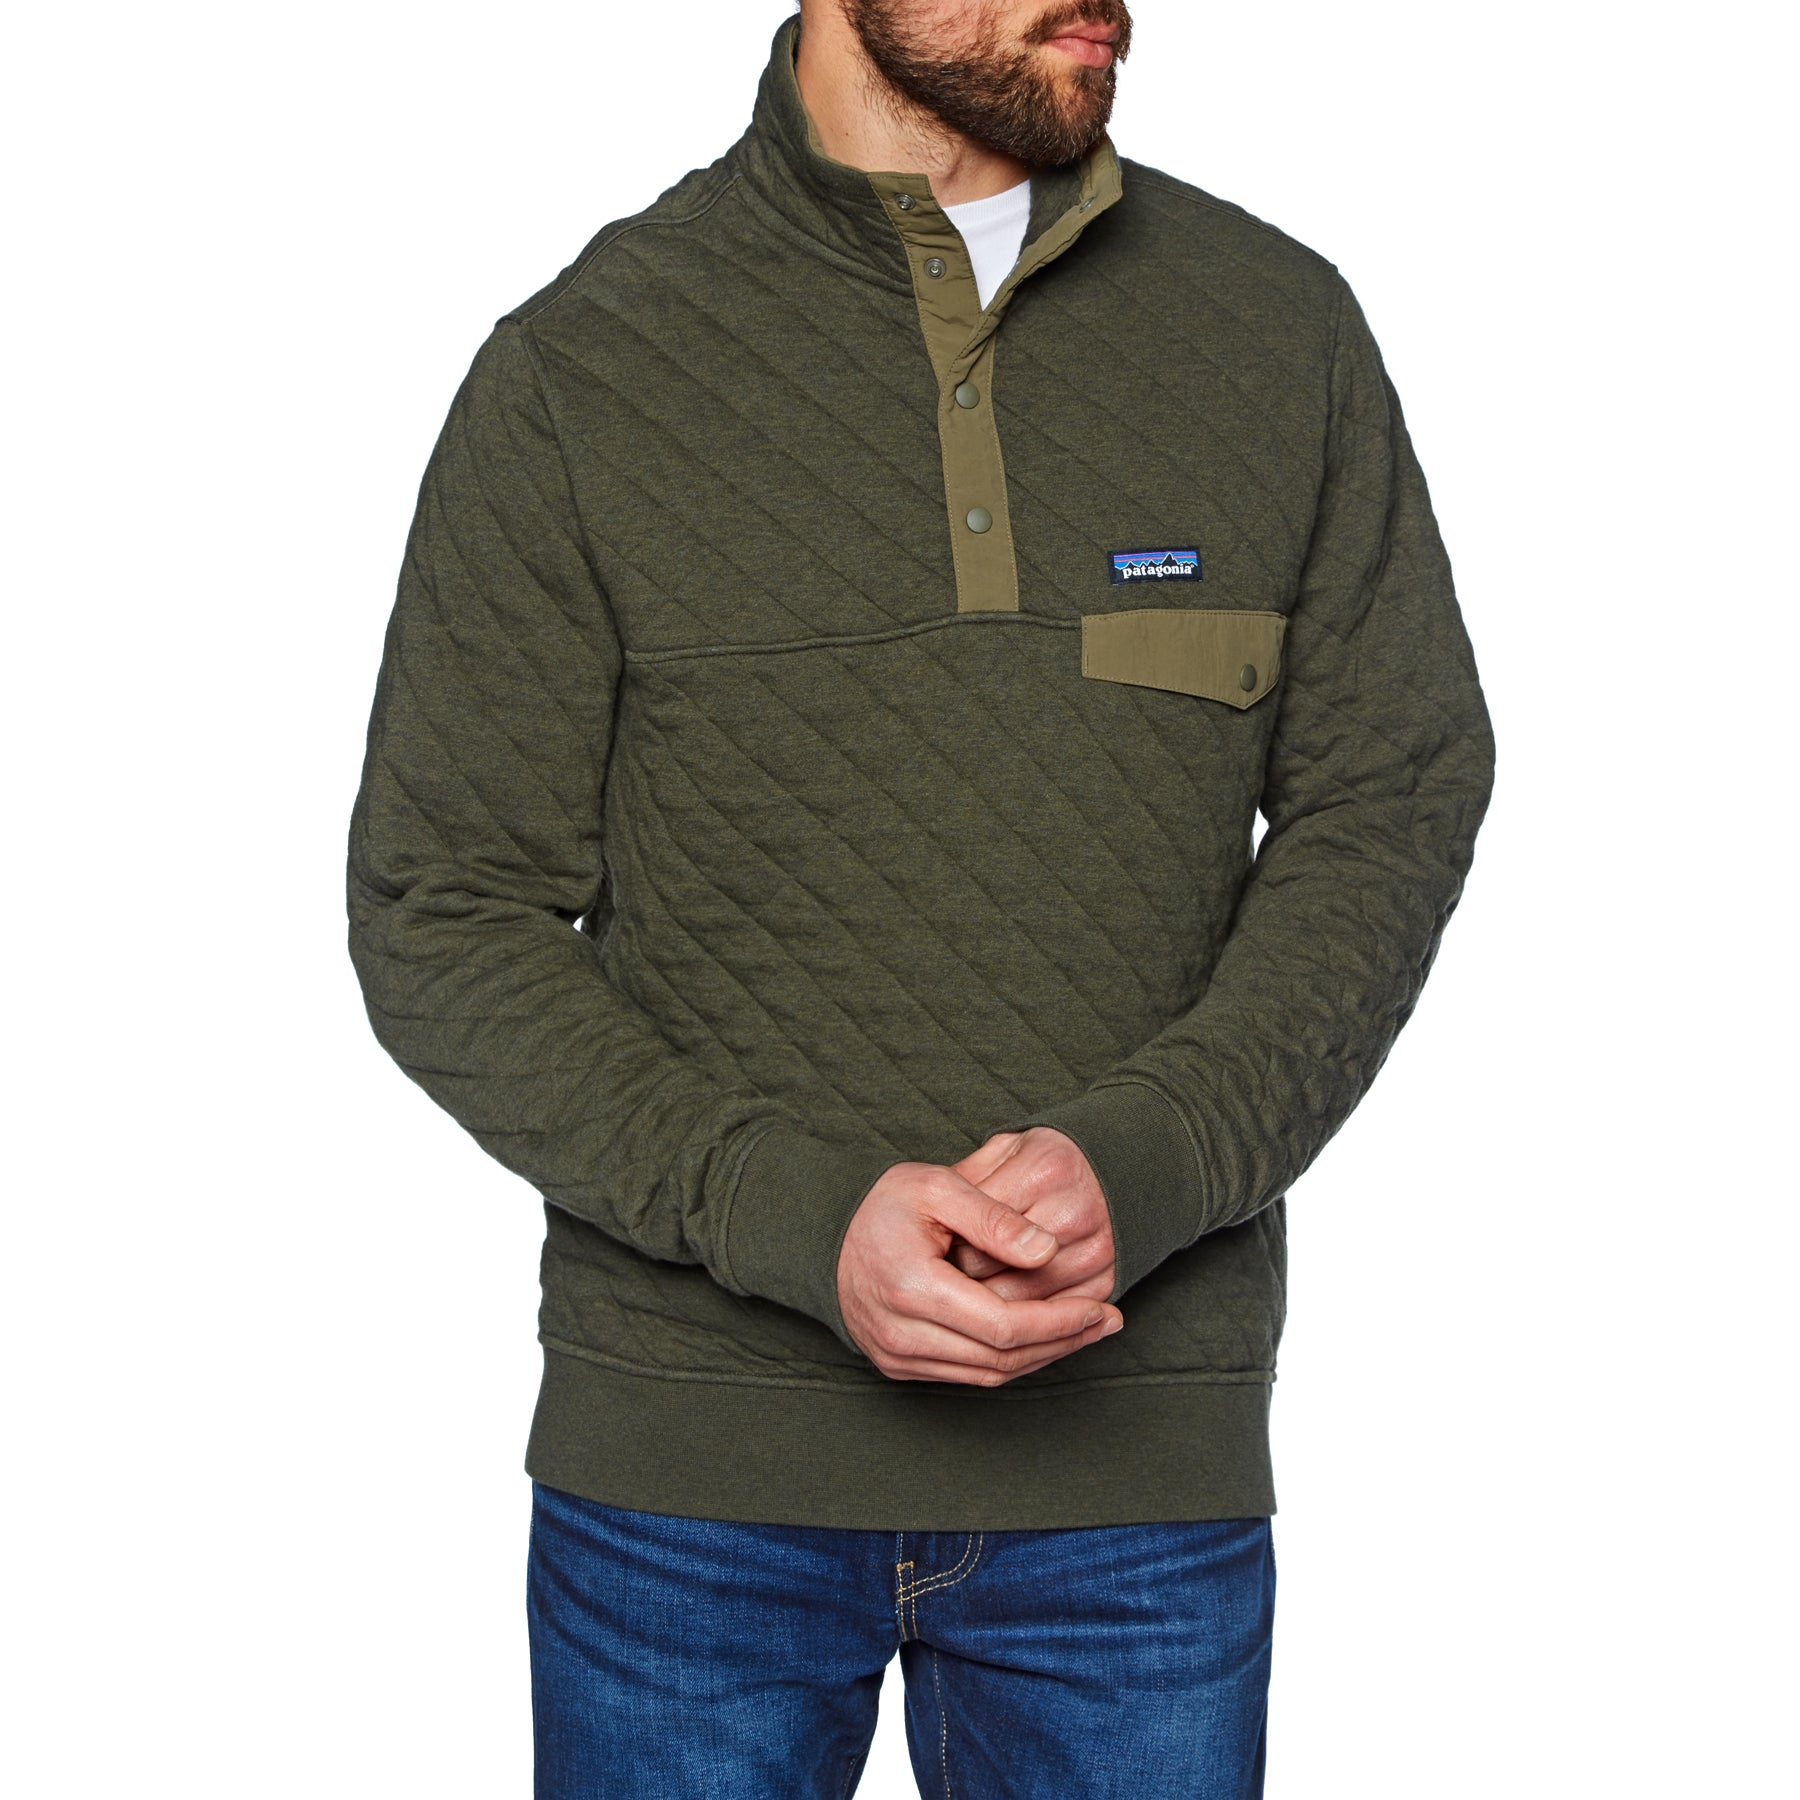 Patagonia Organic Cotton Quilt Snap-T Pullover Sweater - Sediment